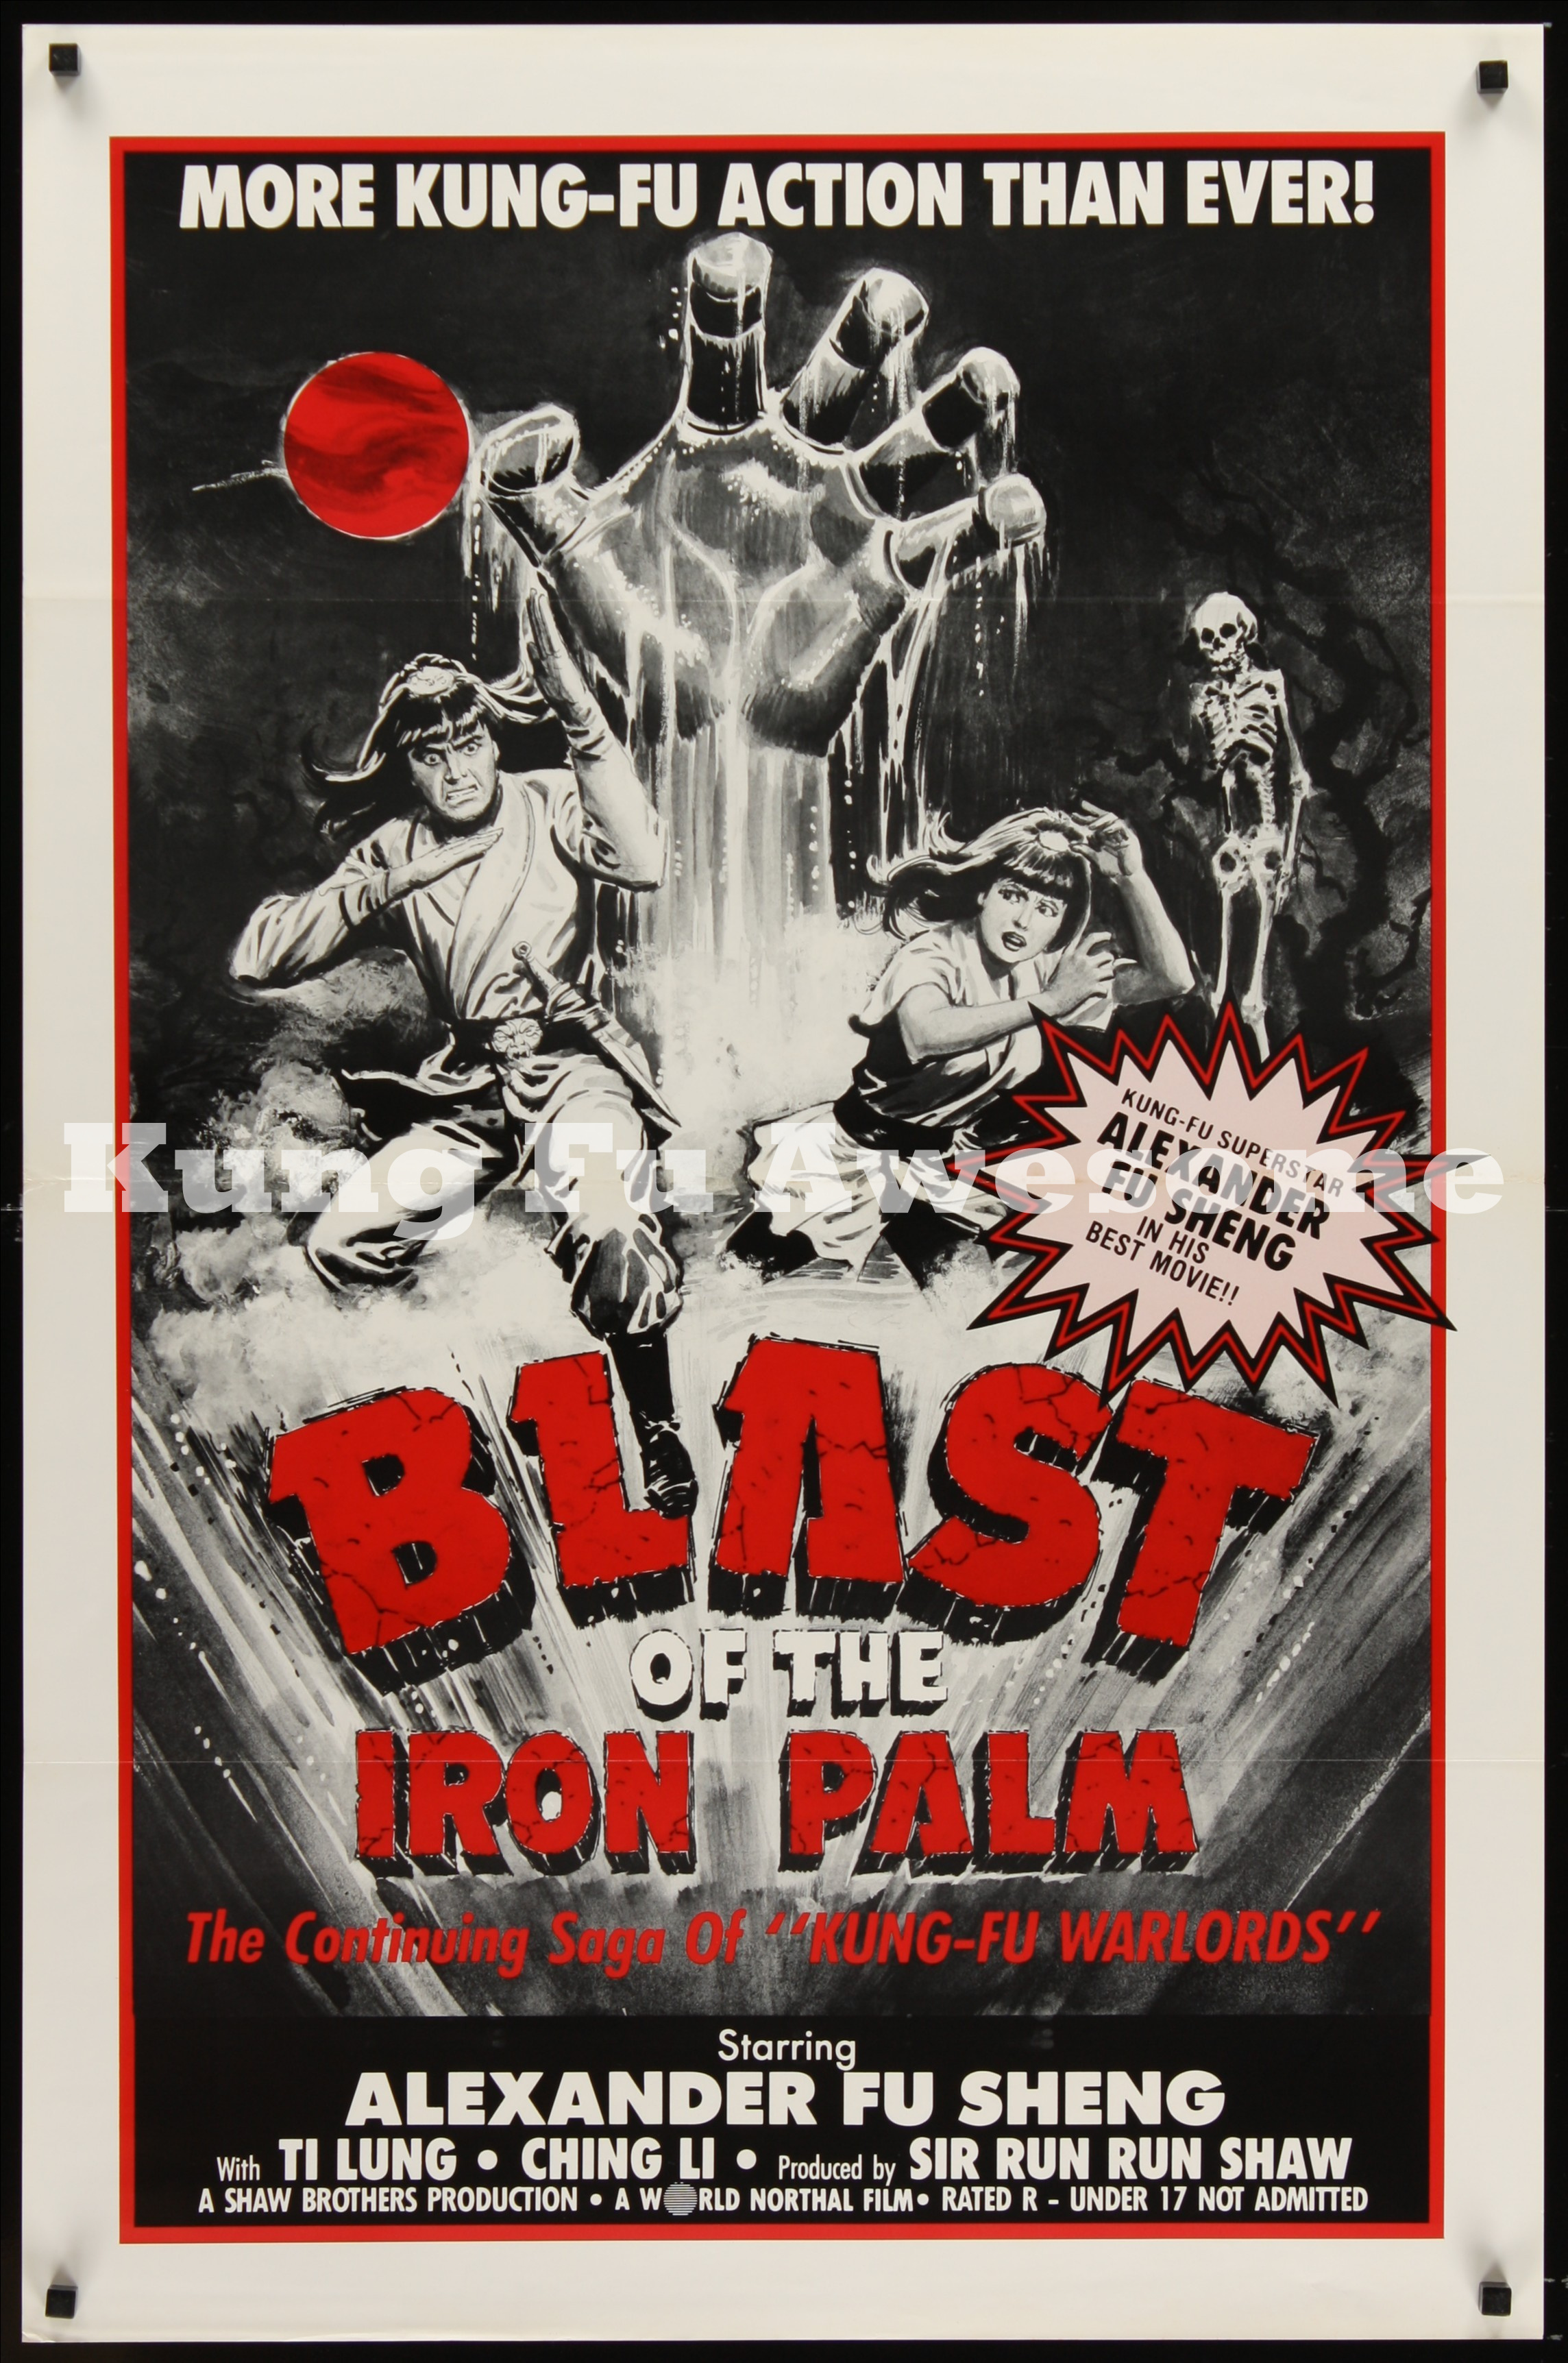 blast_of_the_iron_palm_NZ03751_L.jpg